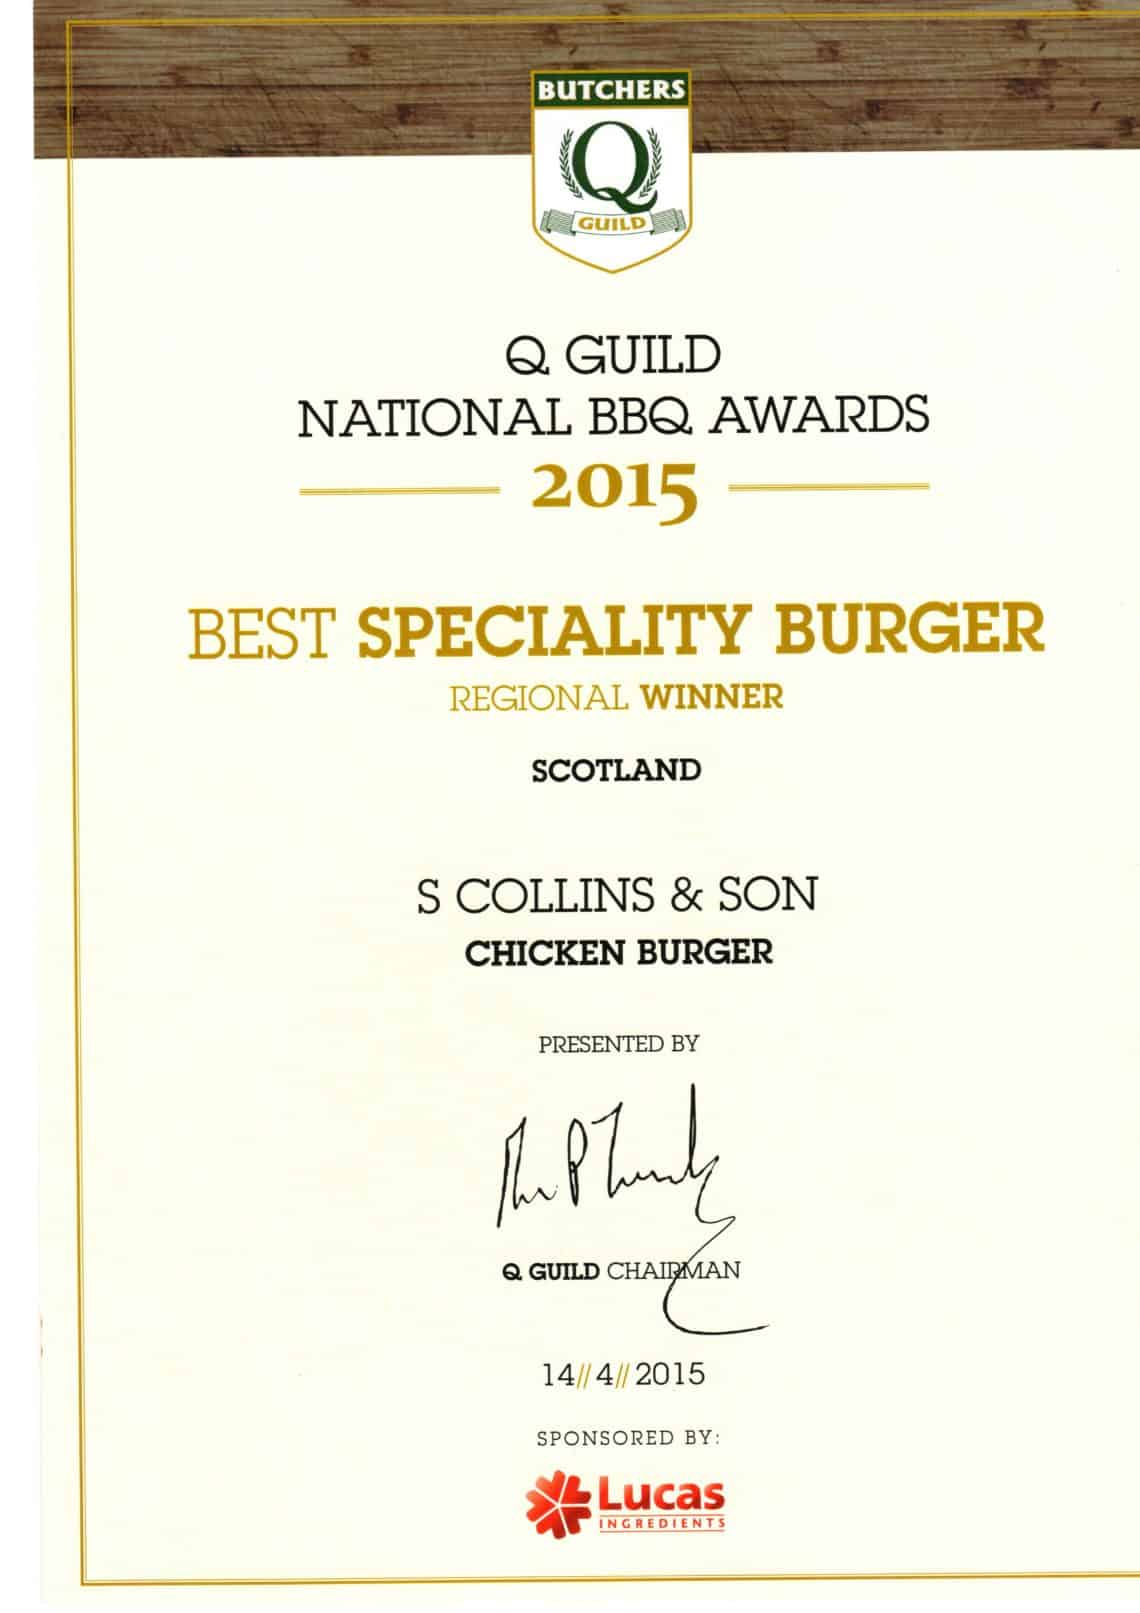 National BBQ Awards 2015: Best Specialty Burger